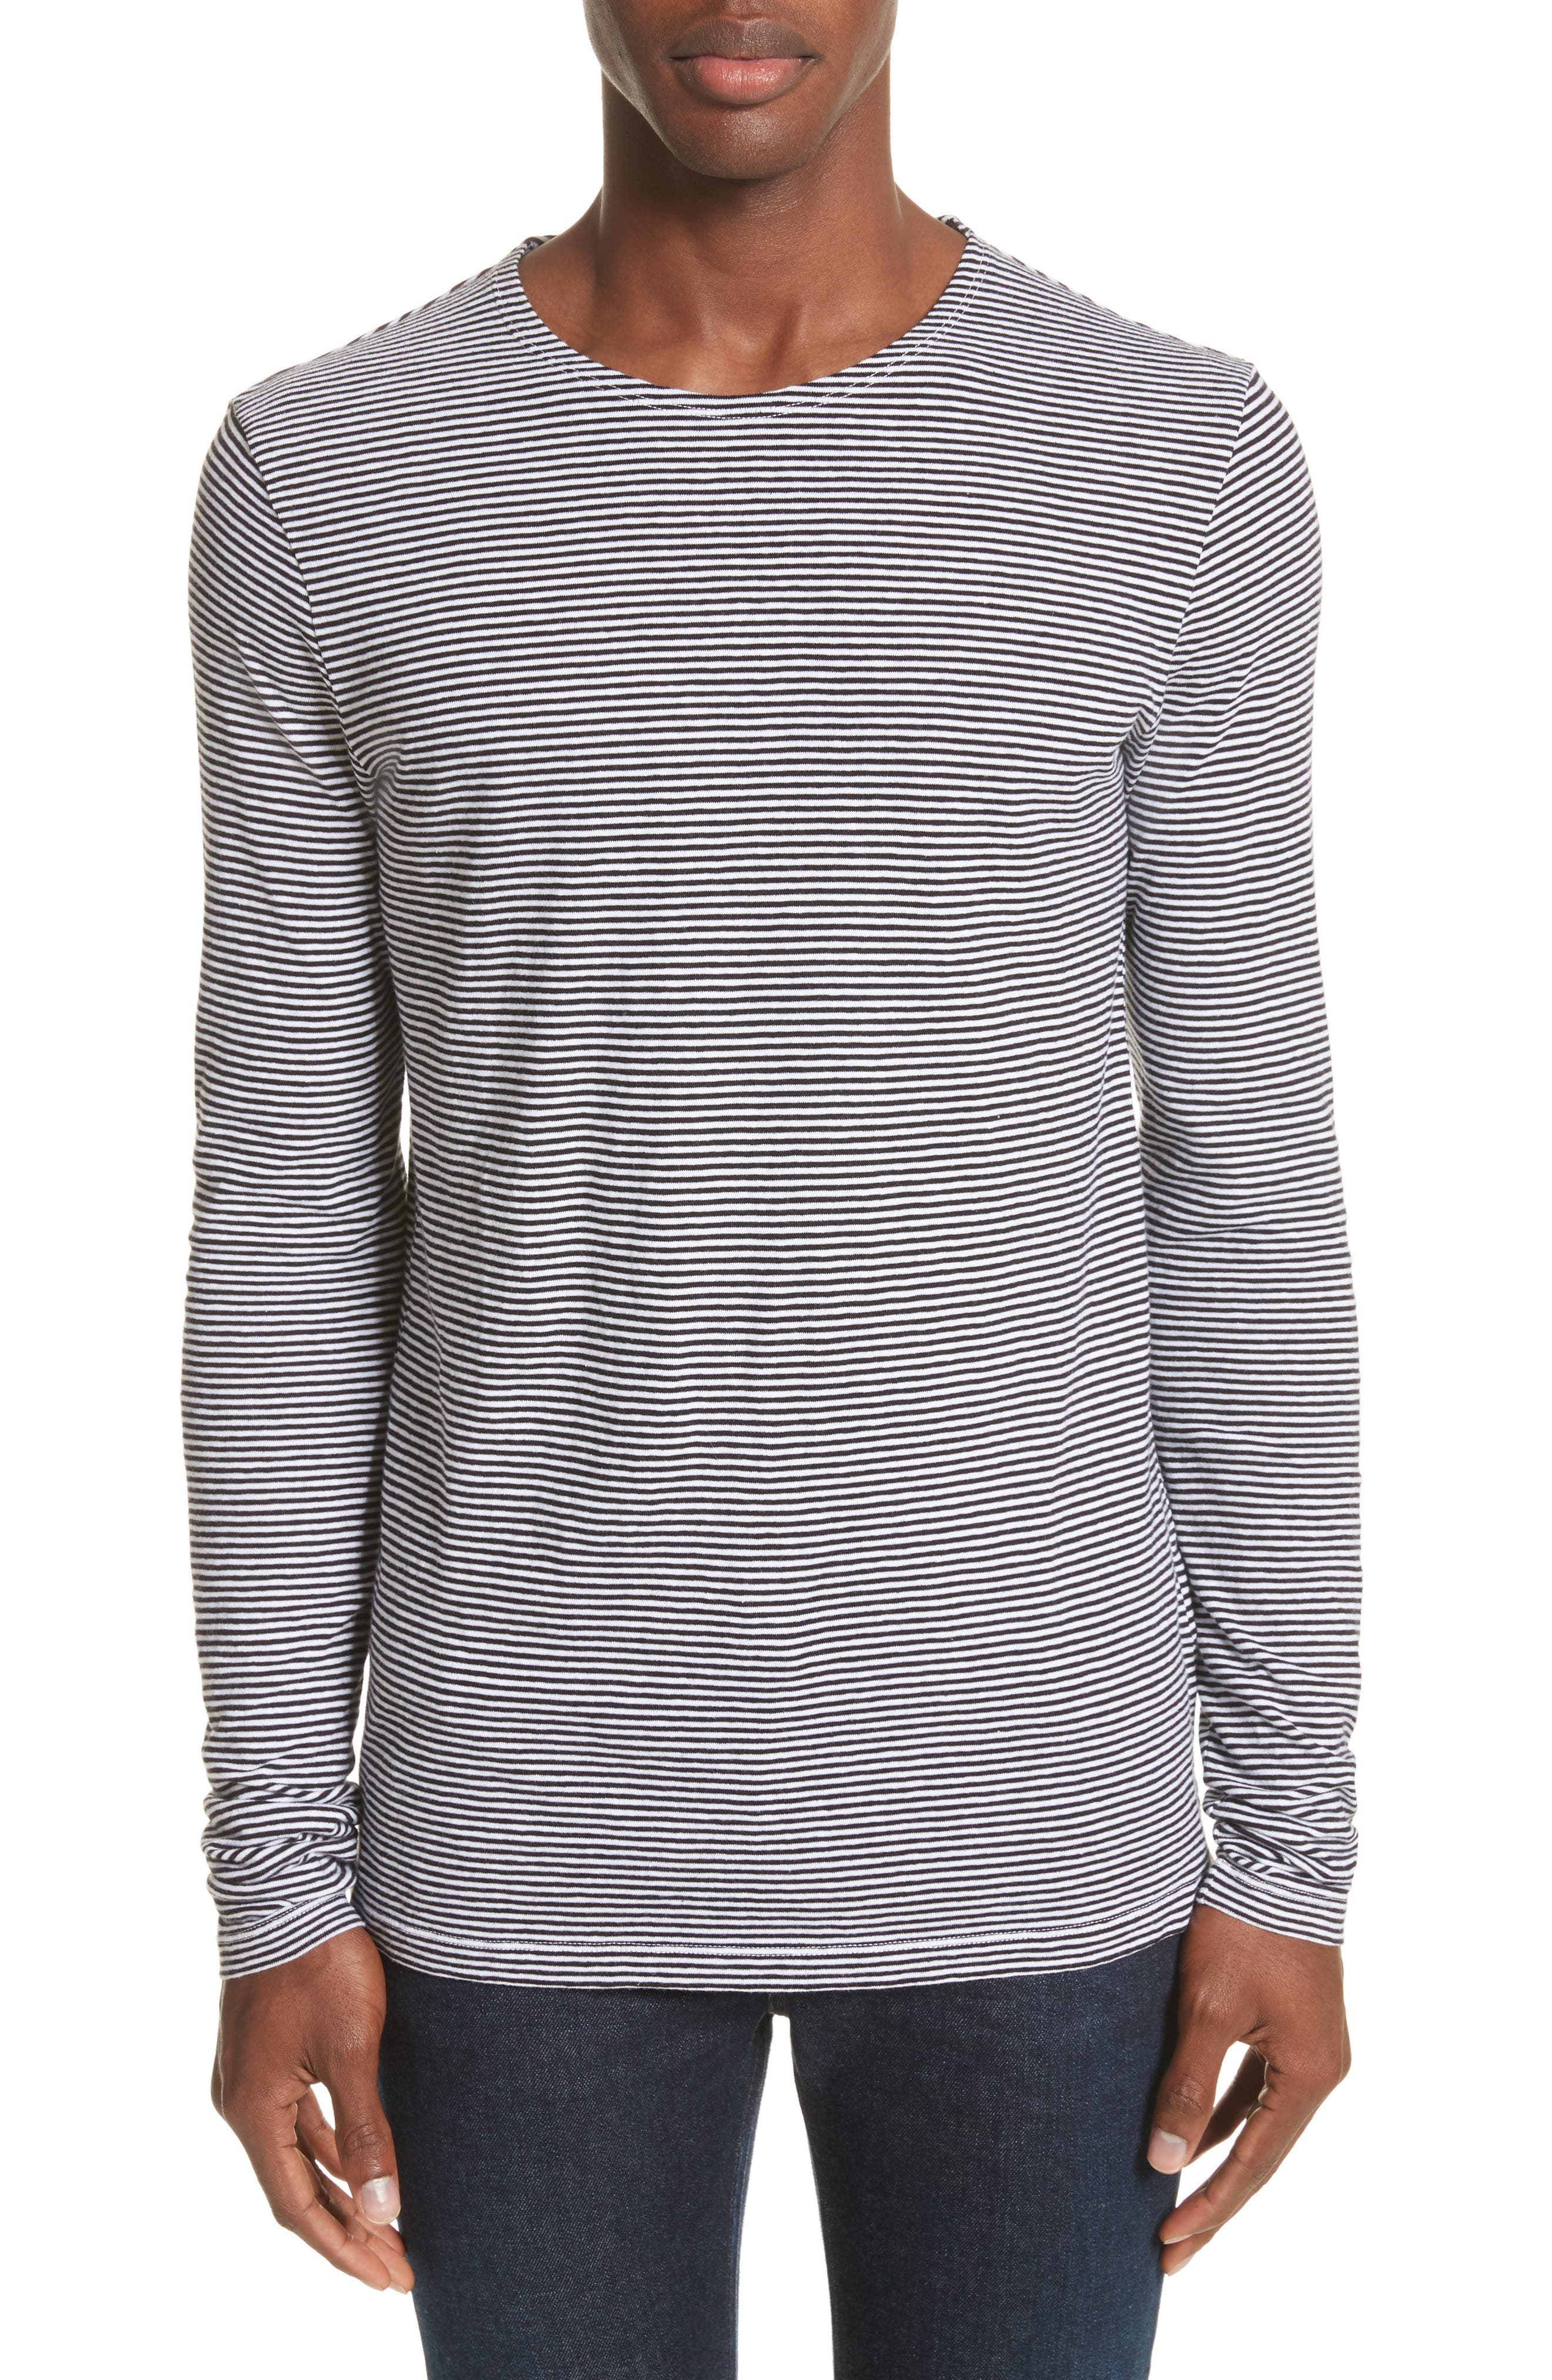 Burberry Tayford Stripe Long Sleeve T-Shirt